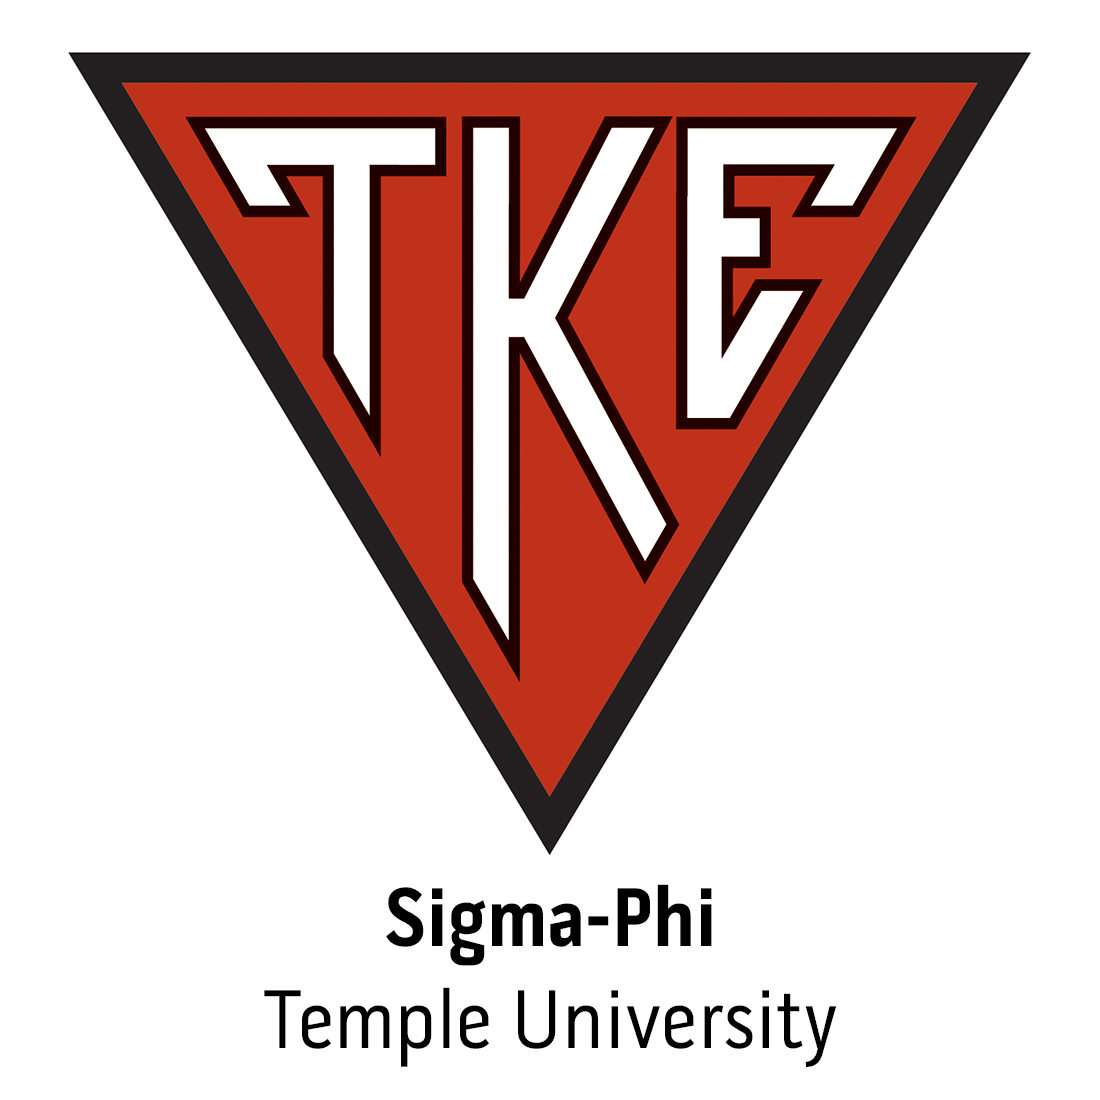 Sigma-Phi Chapter at Temple University